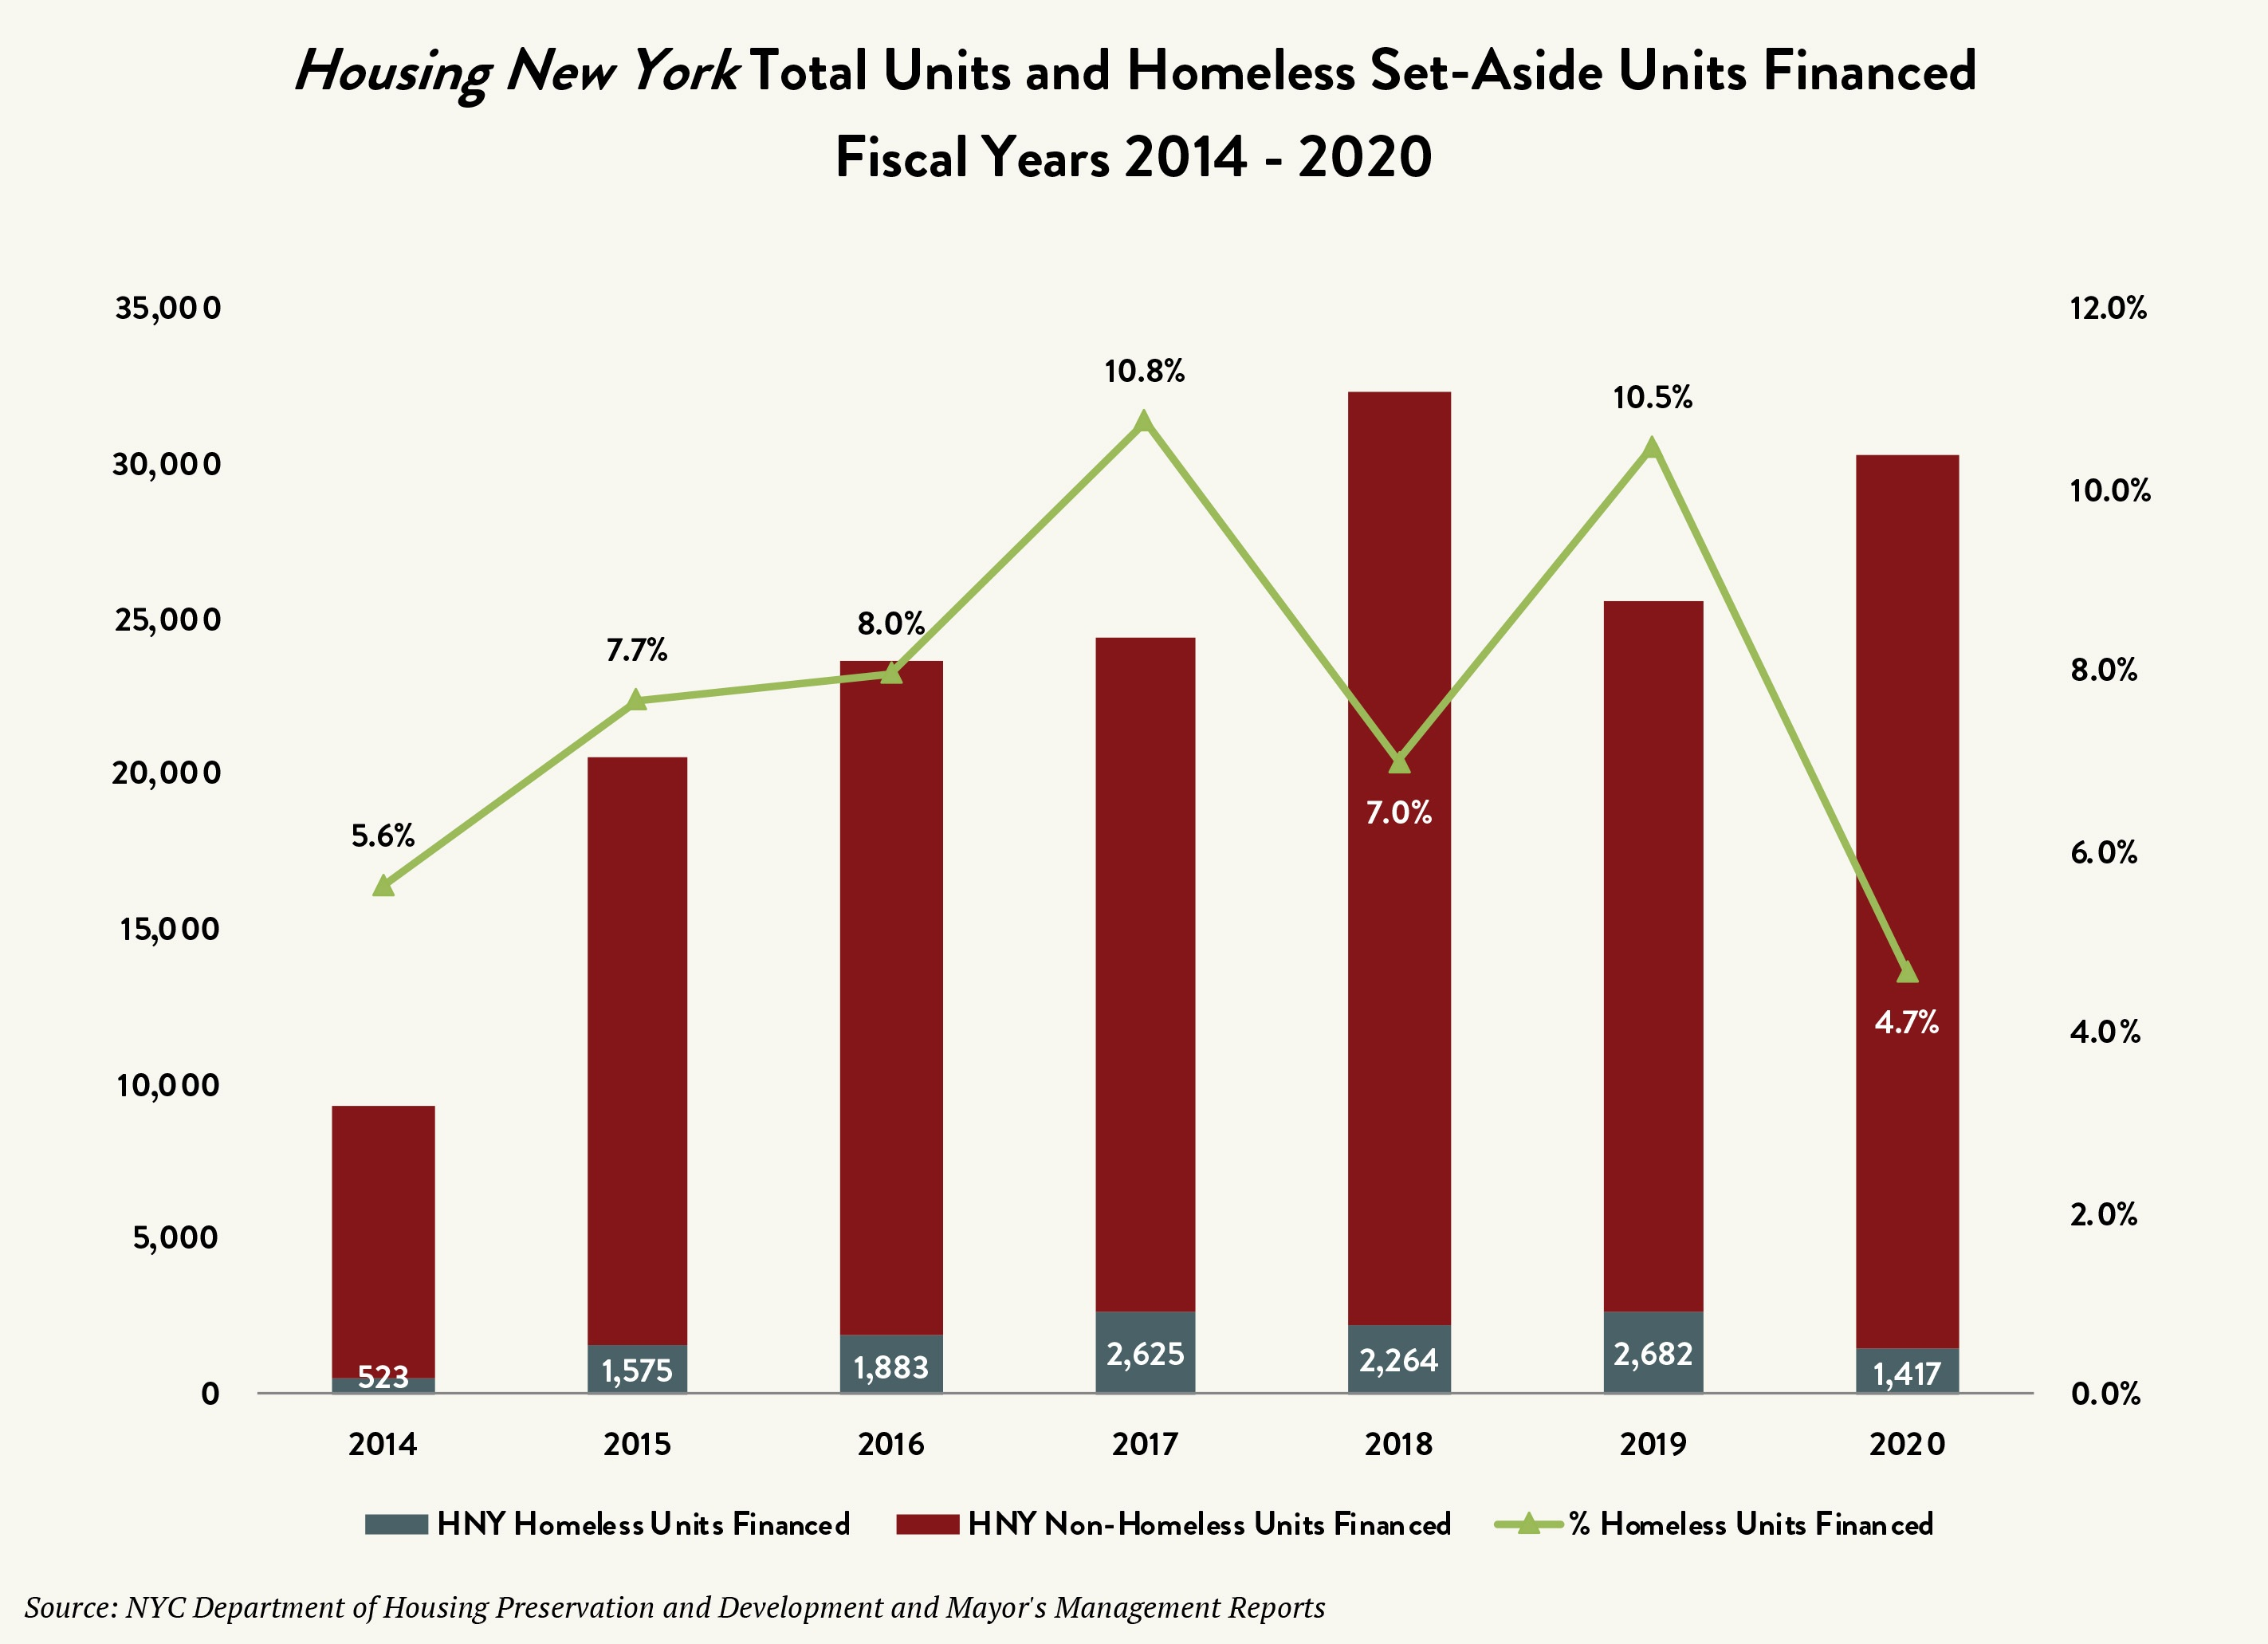 """A graph labeled """"Housing New York Total Units and Homeless Set-Aside Units Financed Fiscal Years 2014 – 2020."""" The vertical axes list numbers 0 to 35,000 in increments of 5,000 on the left, and percentages from 0% to 12% in increments of 2 on the right. The horizontal axis lists the years 2014 through 2020. At each year are bars in two sections: A gray section shows the number of Housing New York homeless units financed, with a value of 1,417 for the year 2020, and a dark red section shows the number of Housing New York non-homeless units financed. A green line marks the percent of homeless units financed at each year, with a value of 4.7% for 2020."""